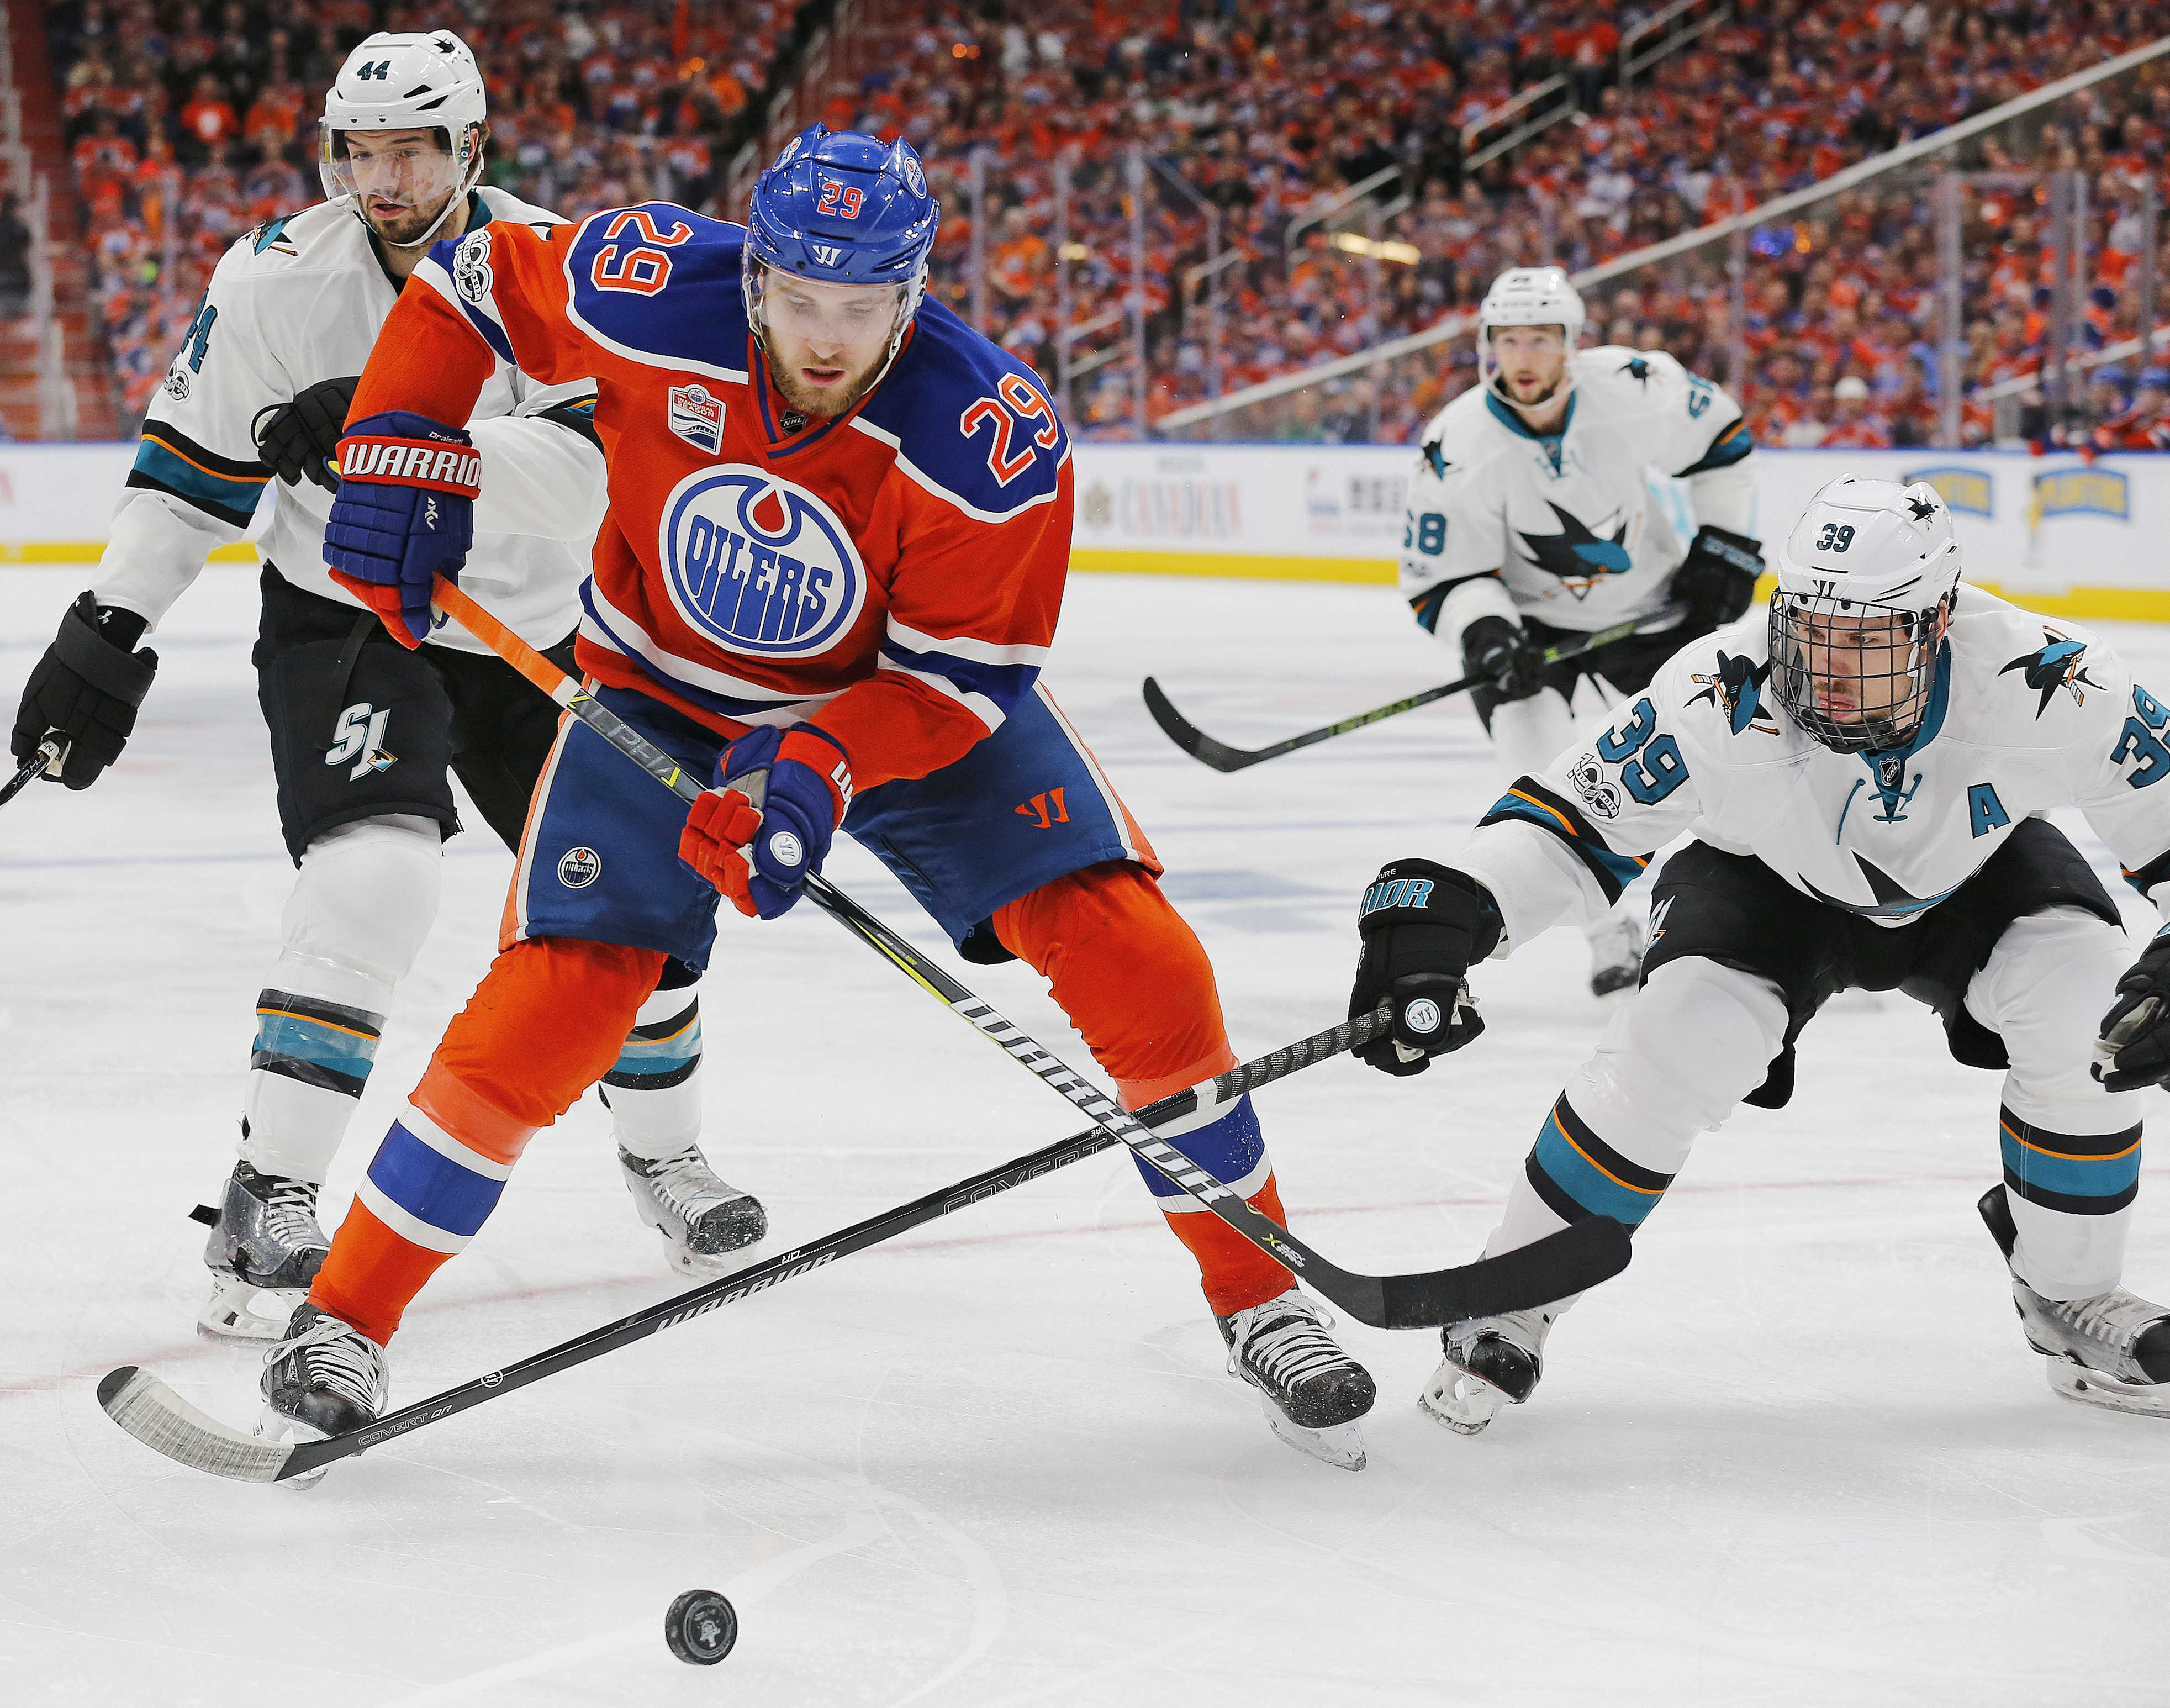 10011770-nhl-stanley-cup-playoffs-san-jose-sharks-at-edmonton-oilers